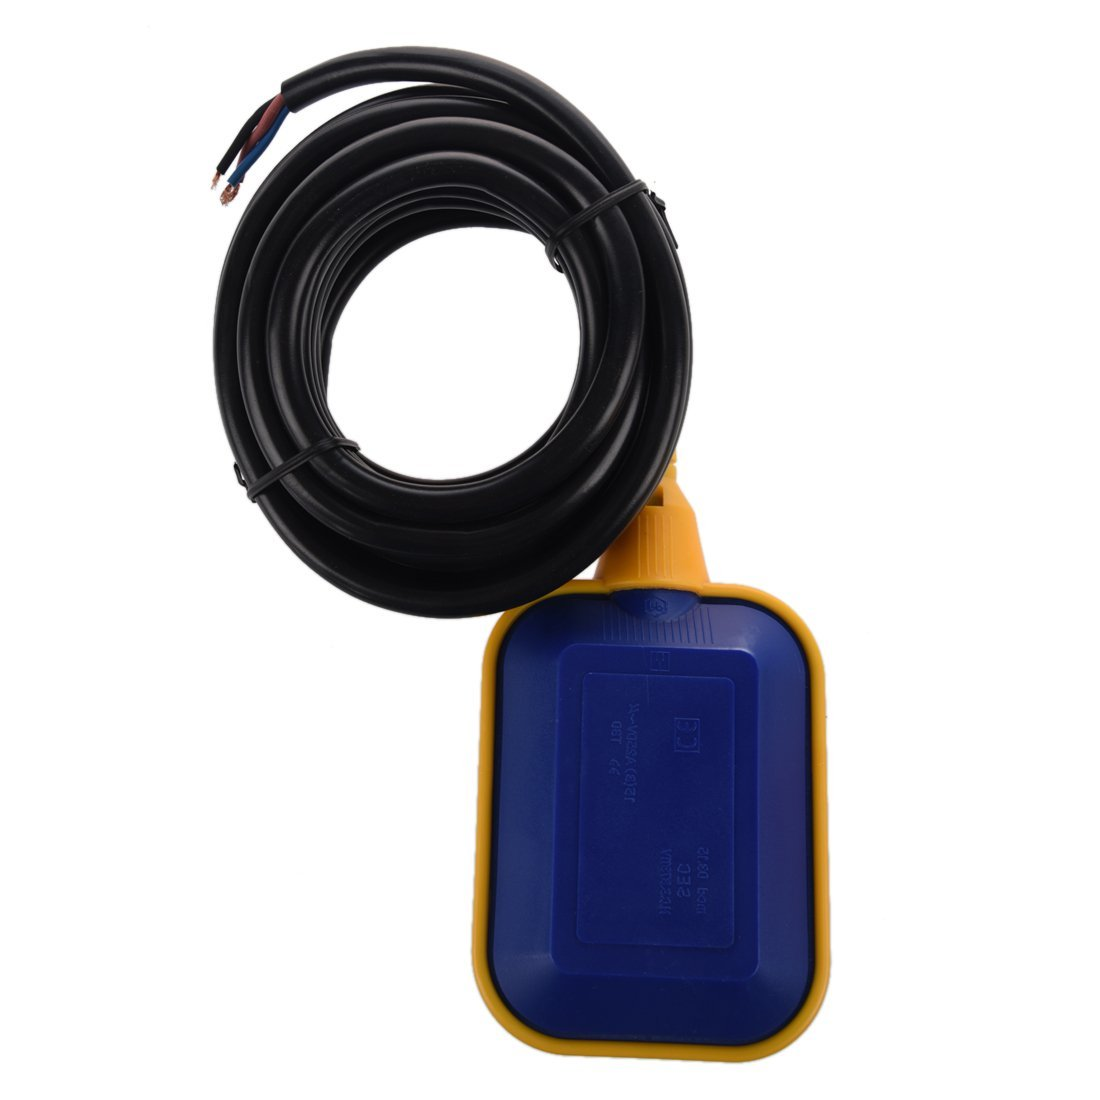 Cheap Fluid Level Switch, find Fluid Level Switch deals on line at